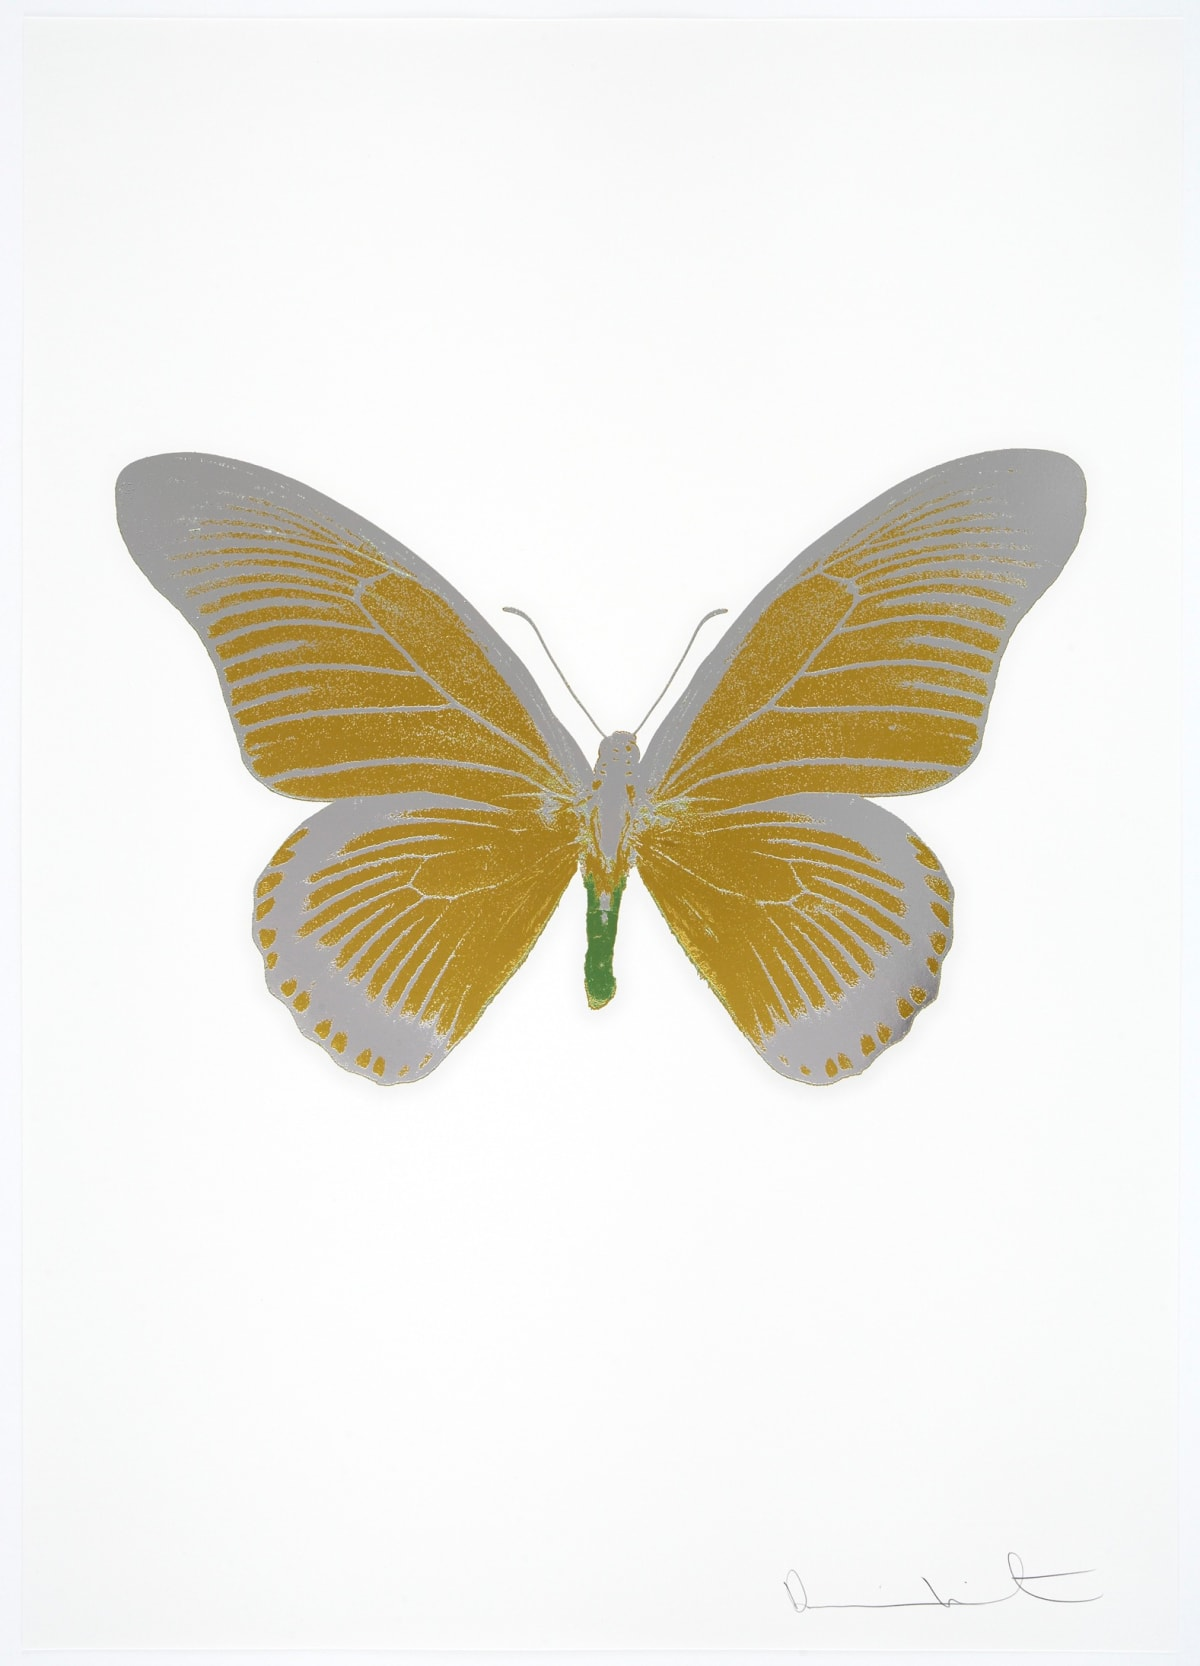 Damien Hirst The Souls IV - Oriental Gold/Silver Gloss/Leaf Green Damien Hirst butterfly foil print for sale Damien Hirst print for sale , 2010 3 colour foil block on 300gsm Arches 88 archival paper. Signed and numbered. Published by Paul Stolper and Other Criteria 72 x 51cm OC8034 / 1418-57 Edition of 15